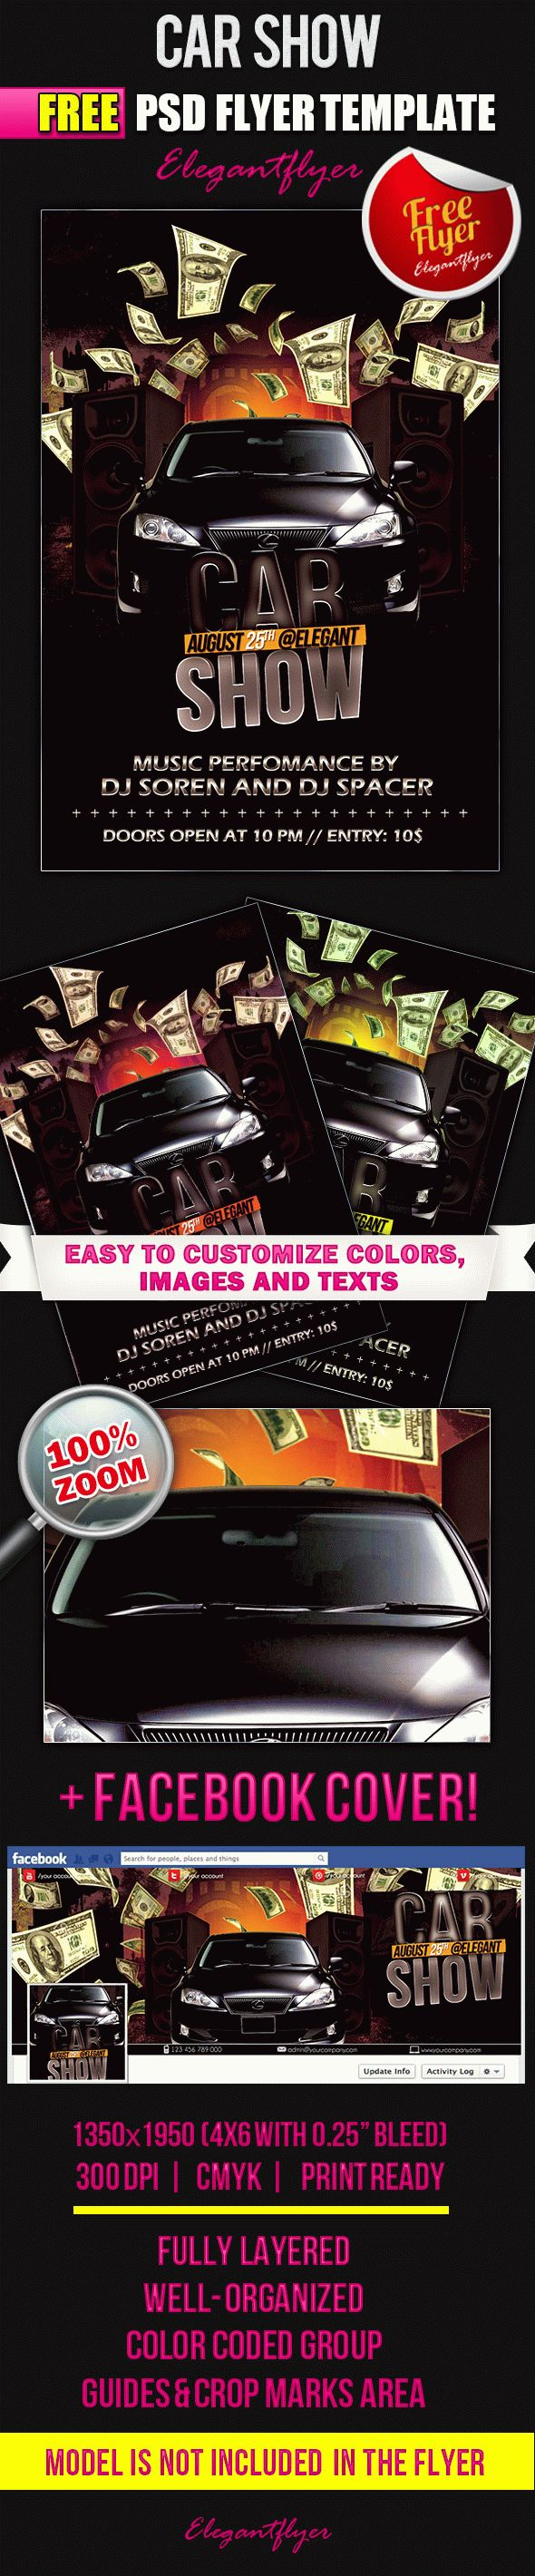 Car Show – Free Flyer PSD Template + Facebook Cover